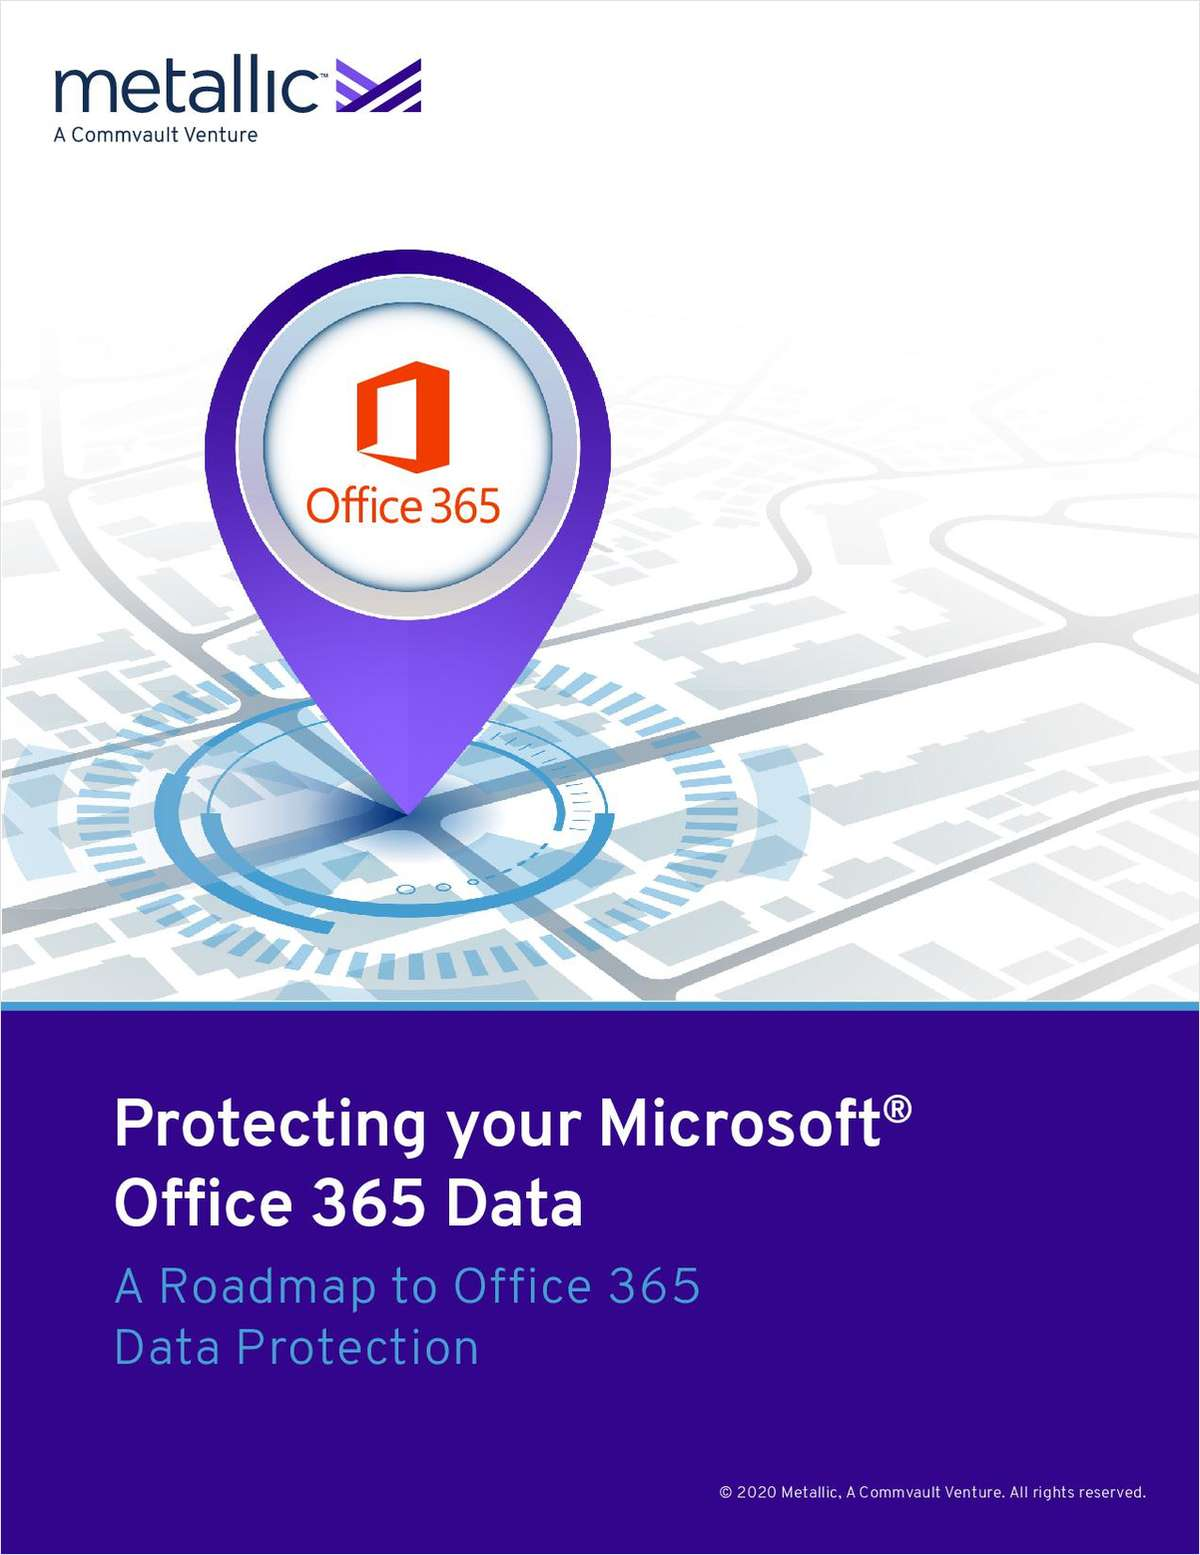 A Roadmap to Office 365 Data Protection